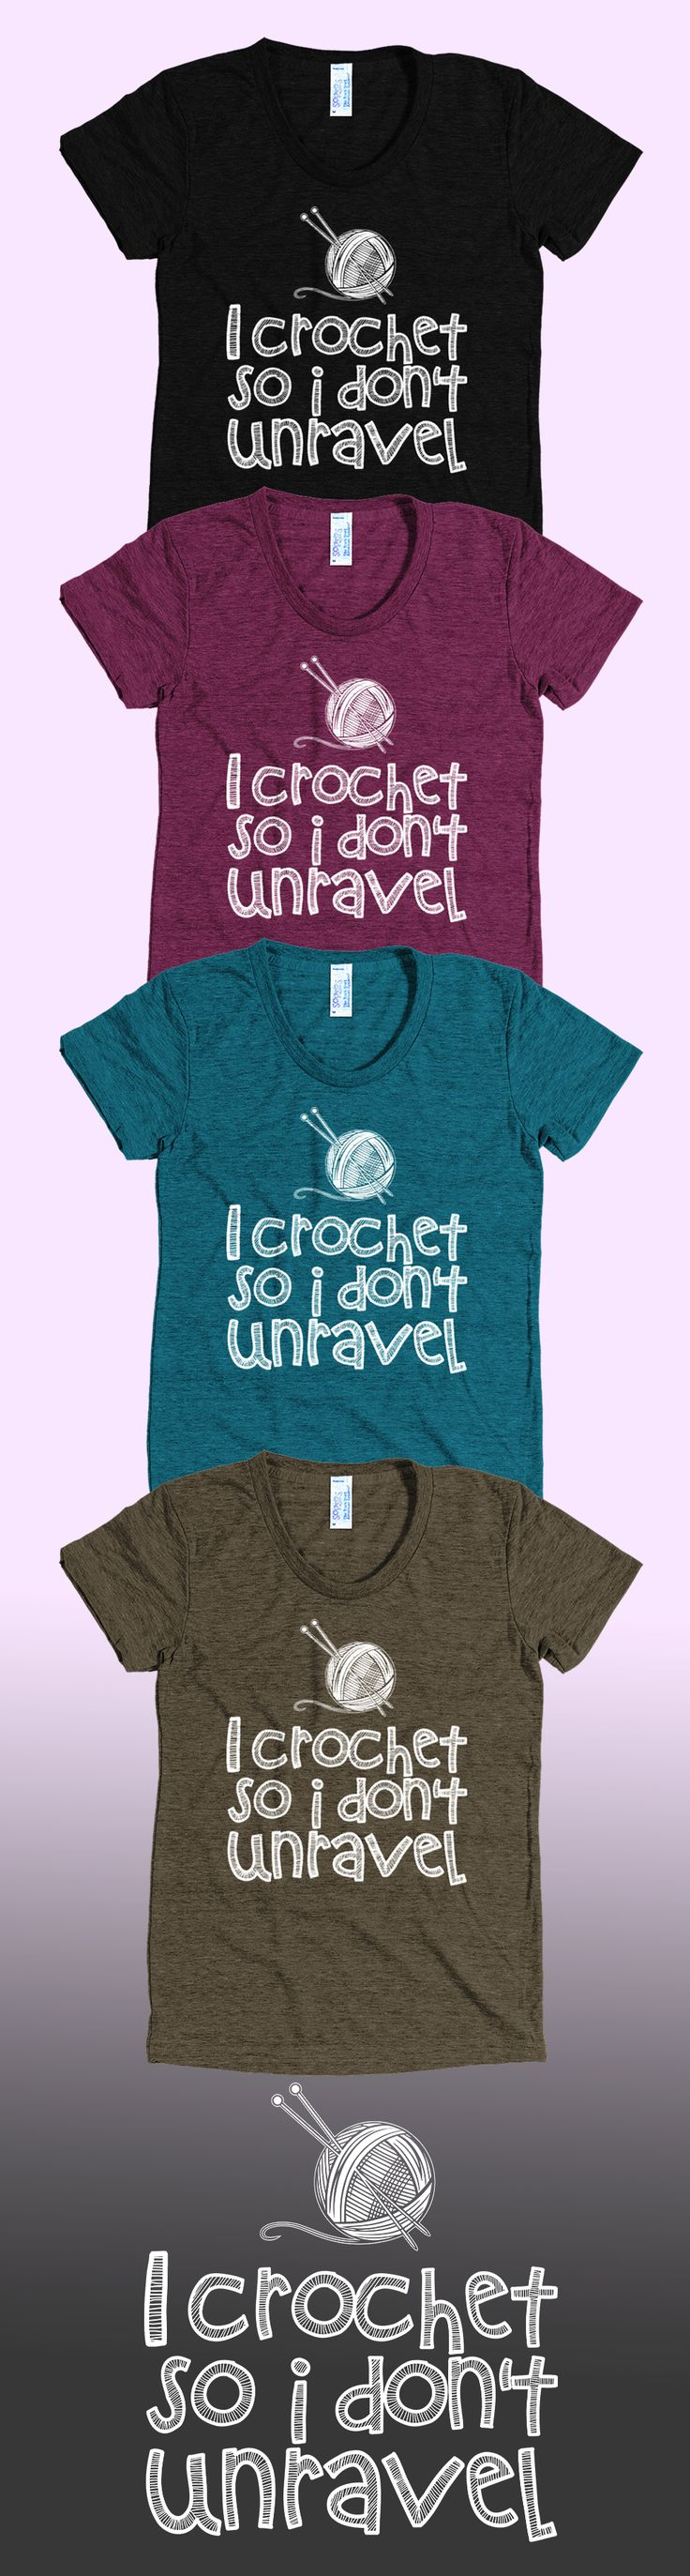 Love crocheting and knitting? Check out this awesome crocheting t-shirt you will…